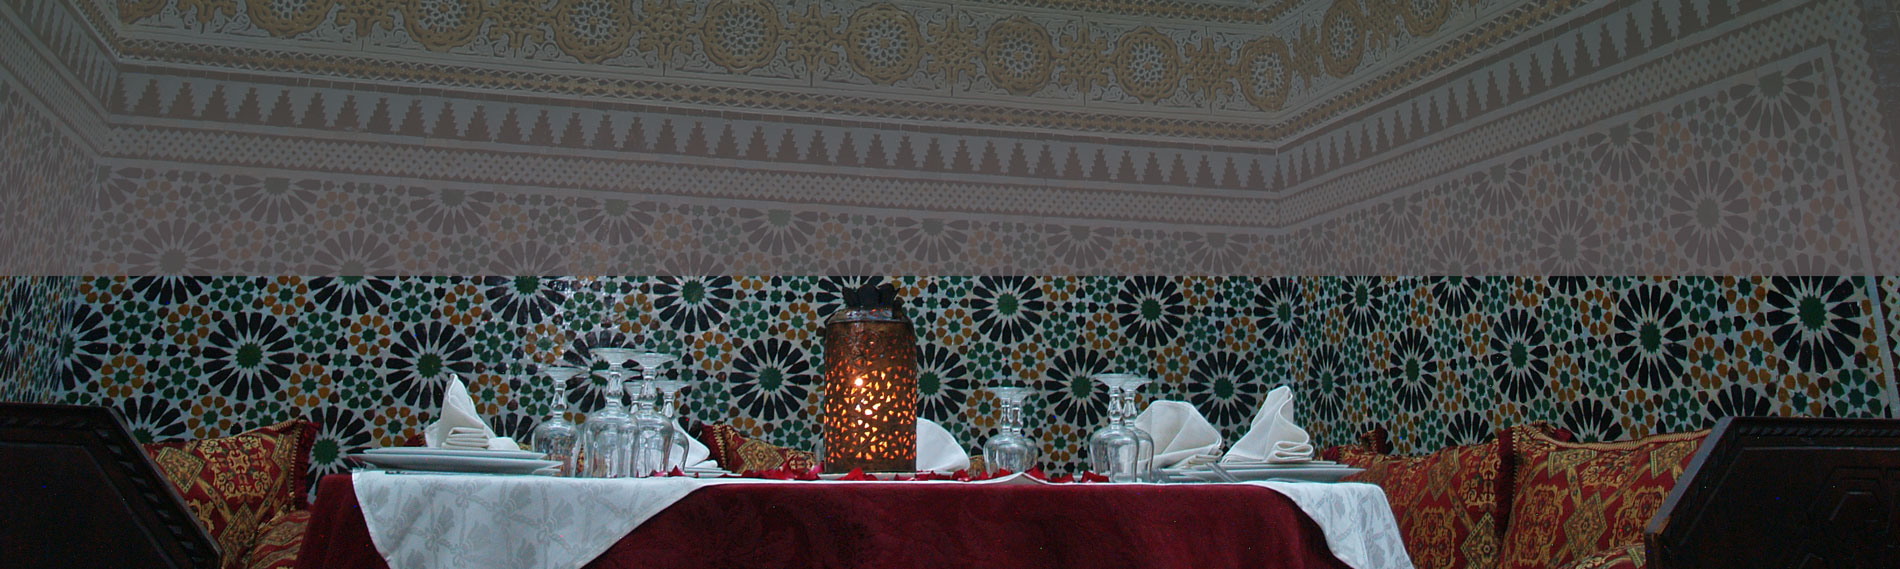 Wedding – Restaurant in Marrakech